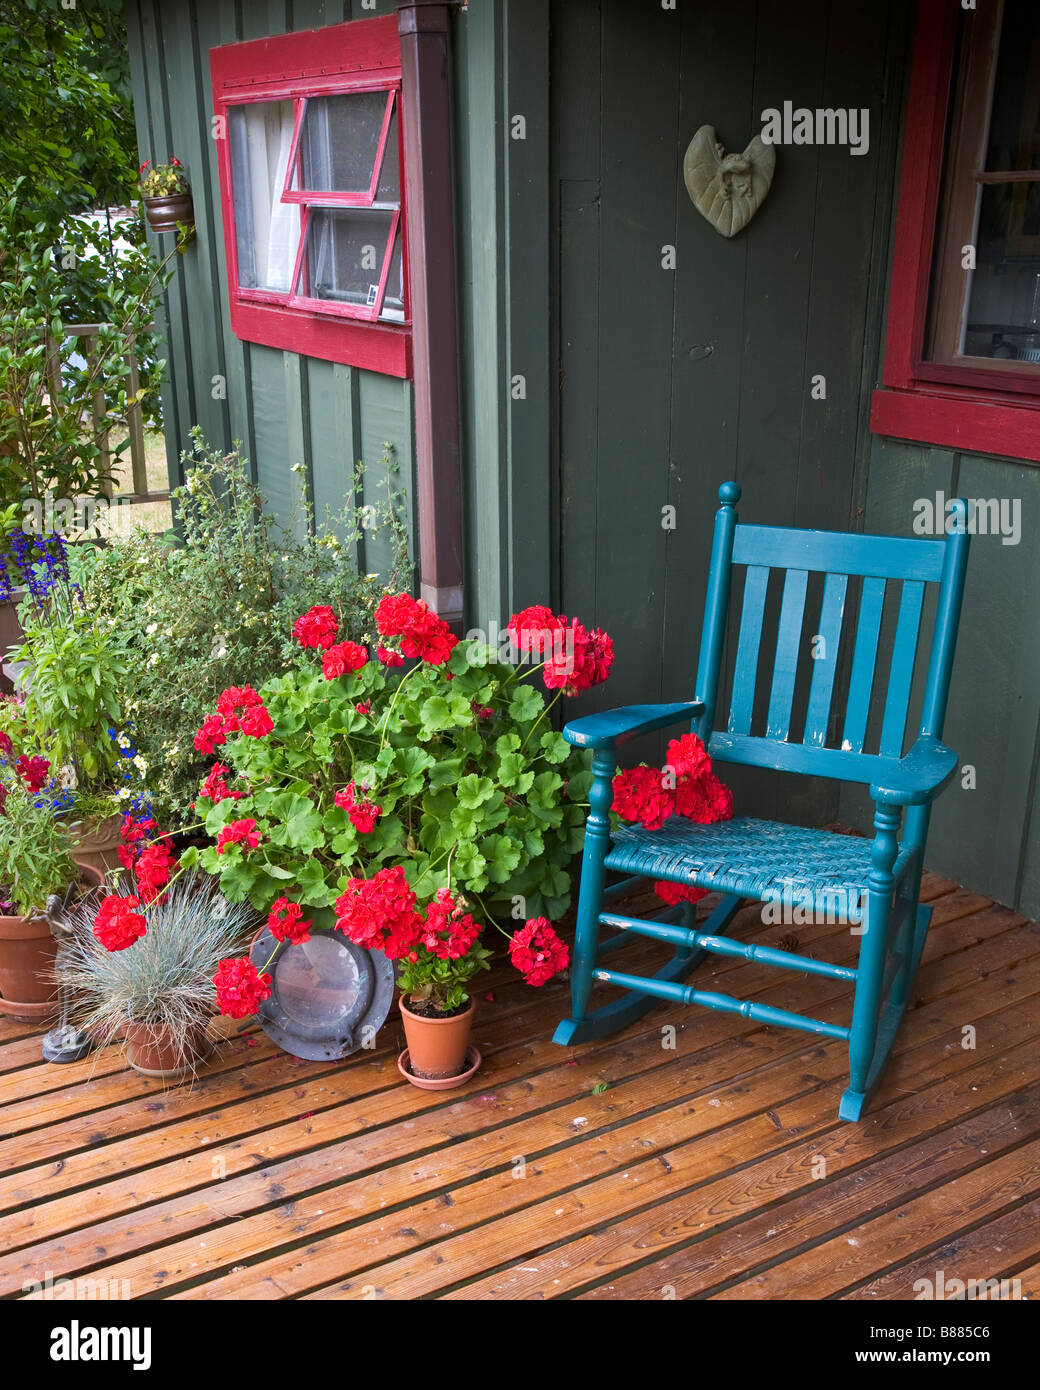 Vashon Island, WA: Colorful deck with potted flowers and blue rocker in the village of Ellisport - Stock Image